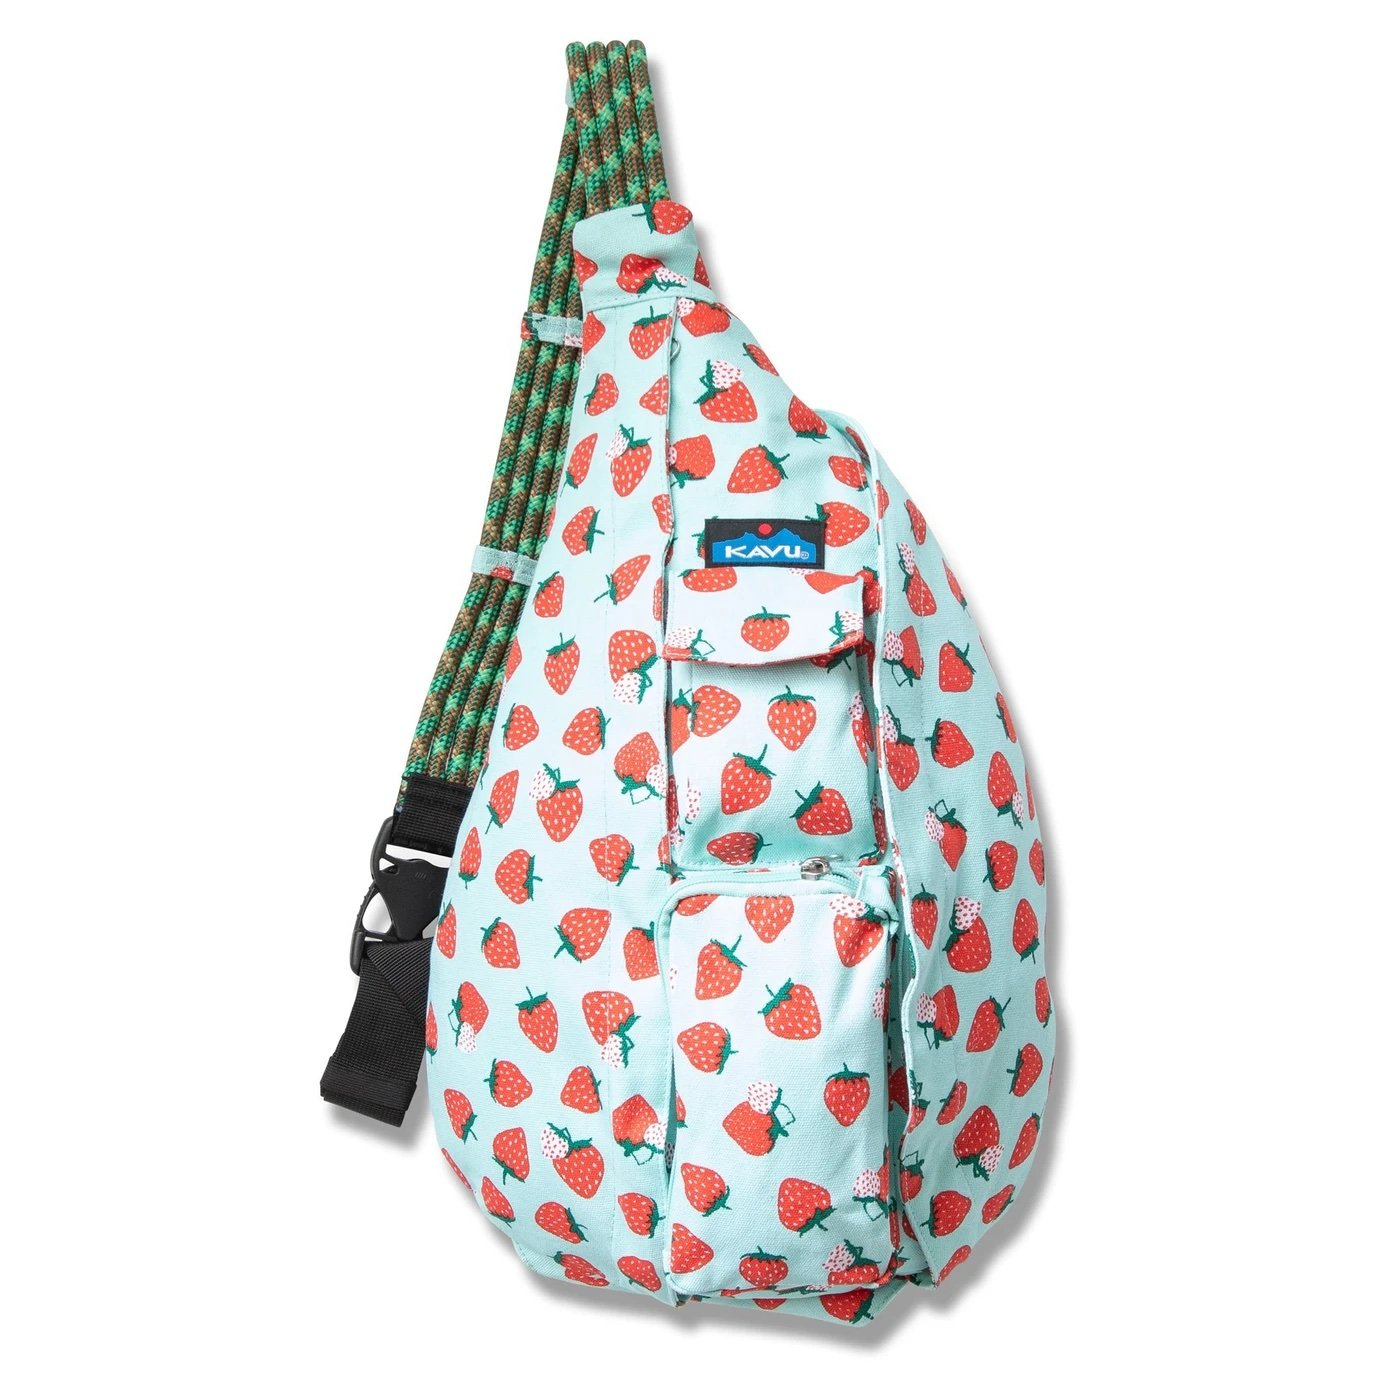 KAVU Back Packs STRAWBERRY PATCH KAVU Rope Bag Back Pack || David's Clothing 923-1402